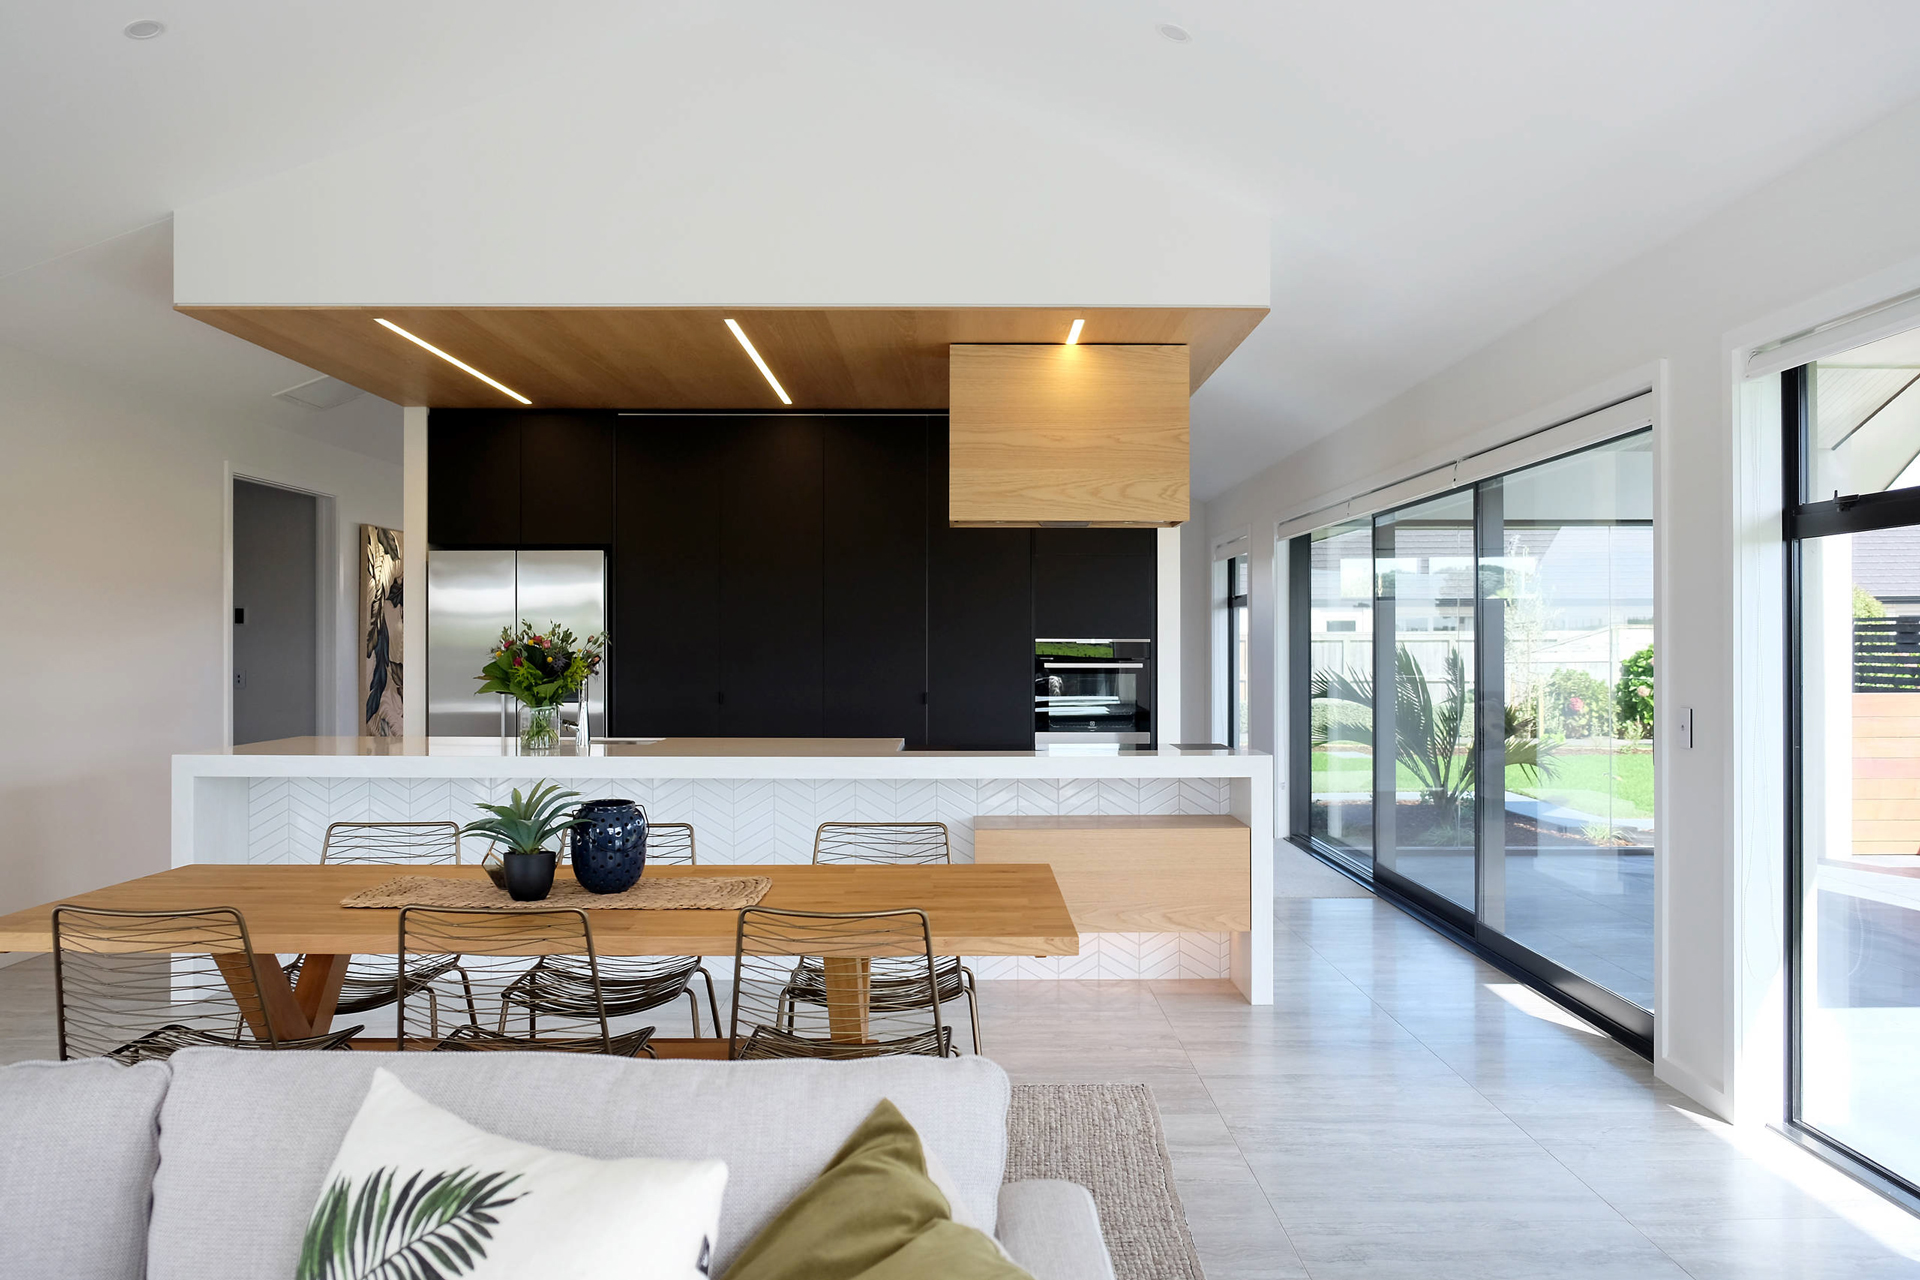 Intelligently integrated within the island bulkhead is Australia's number one selling silent rangehood, UM1170-9S. A clever way to move the cooktop from the splashback to enjoy the rest of the home.